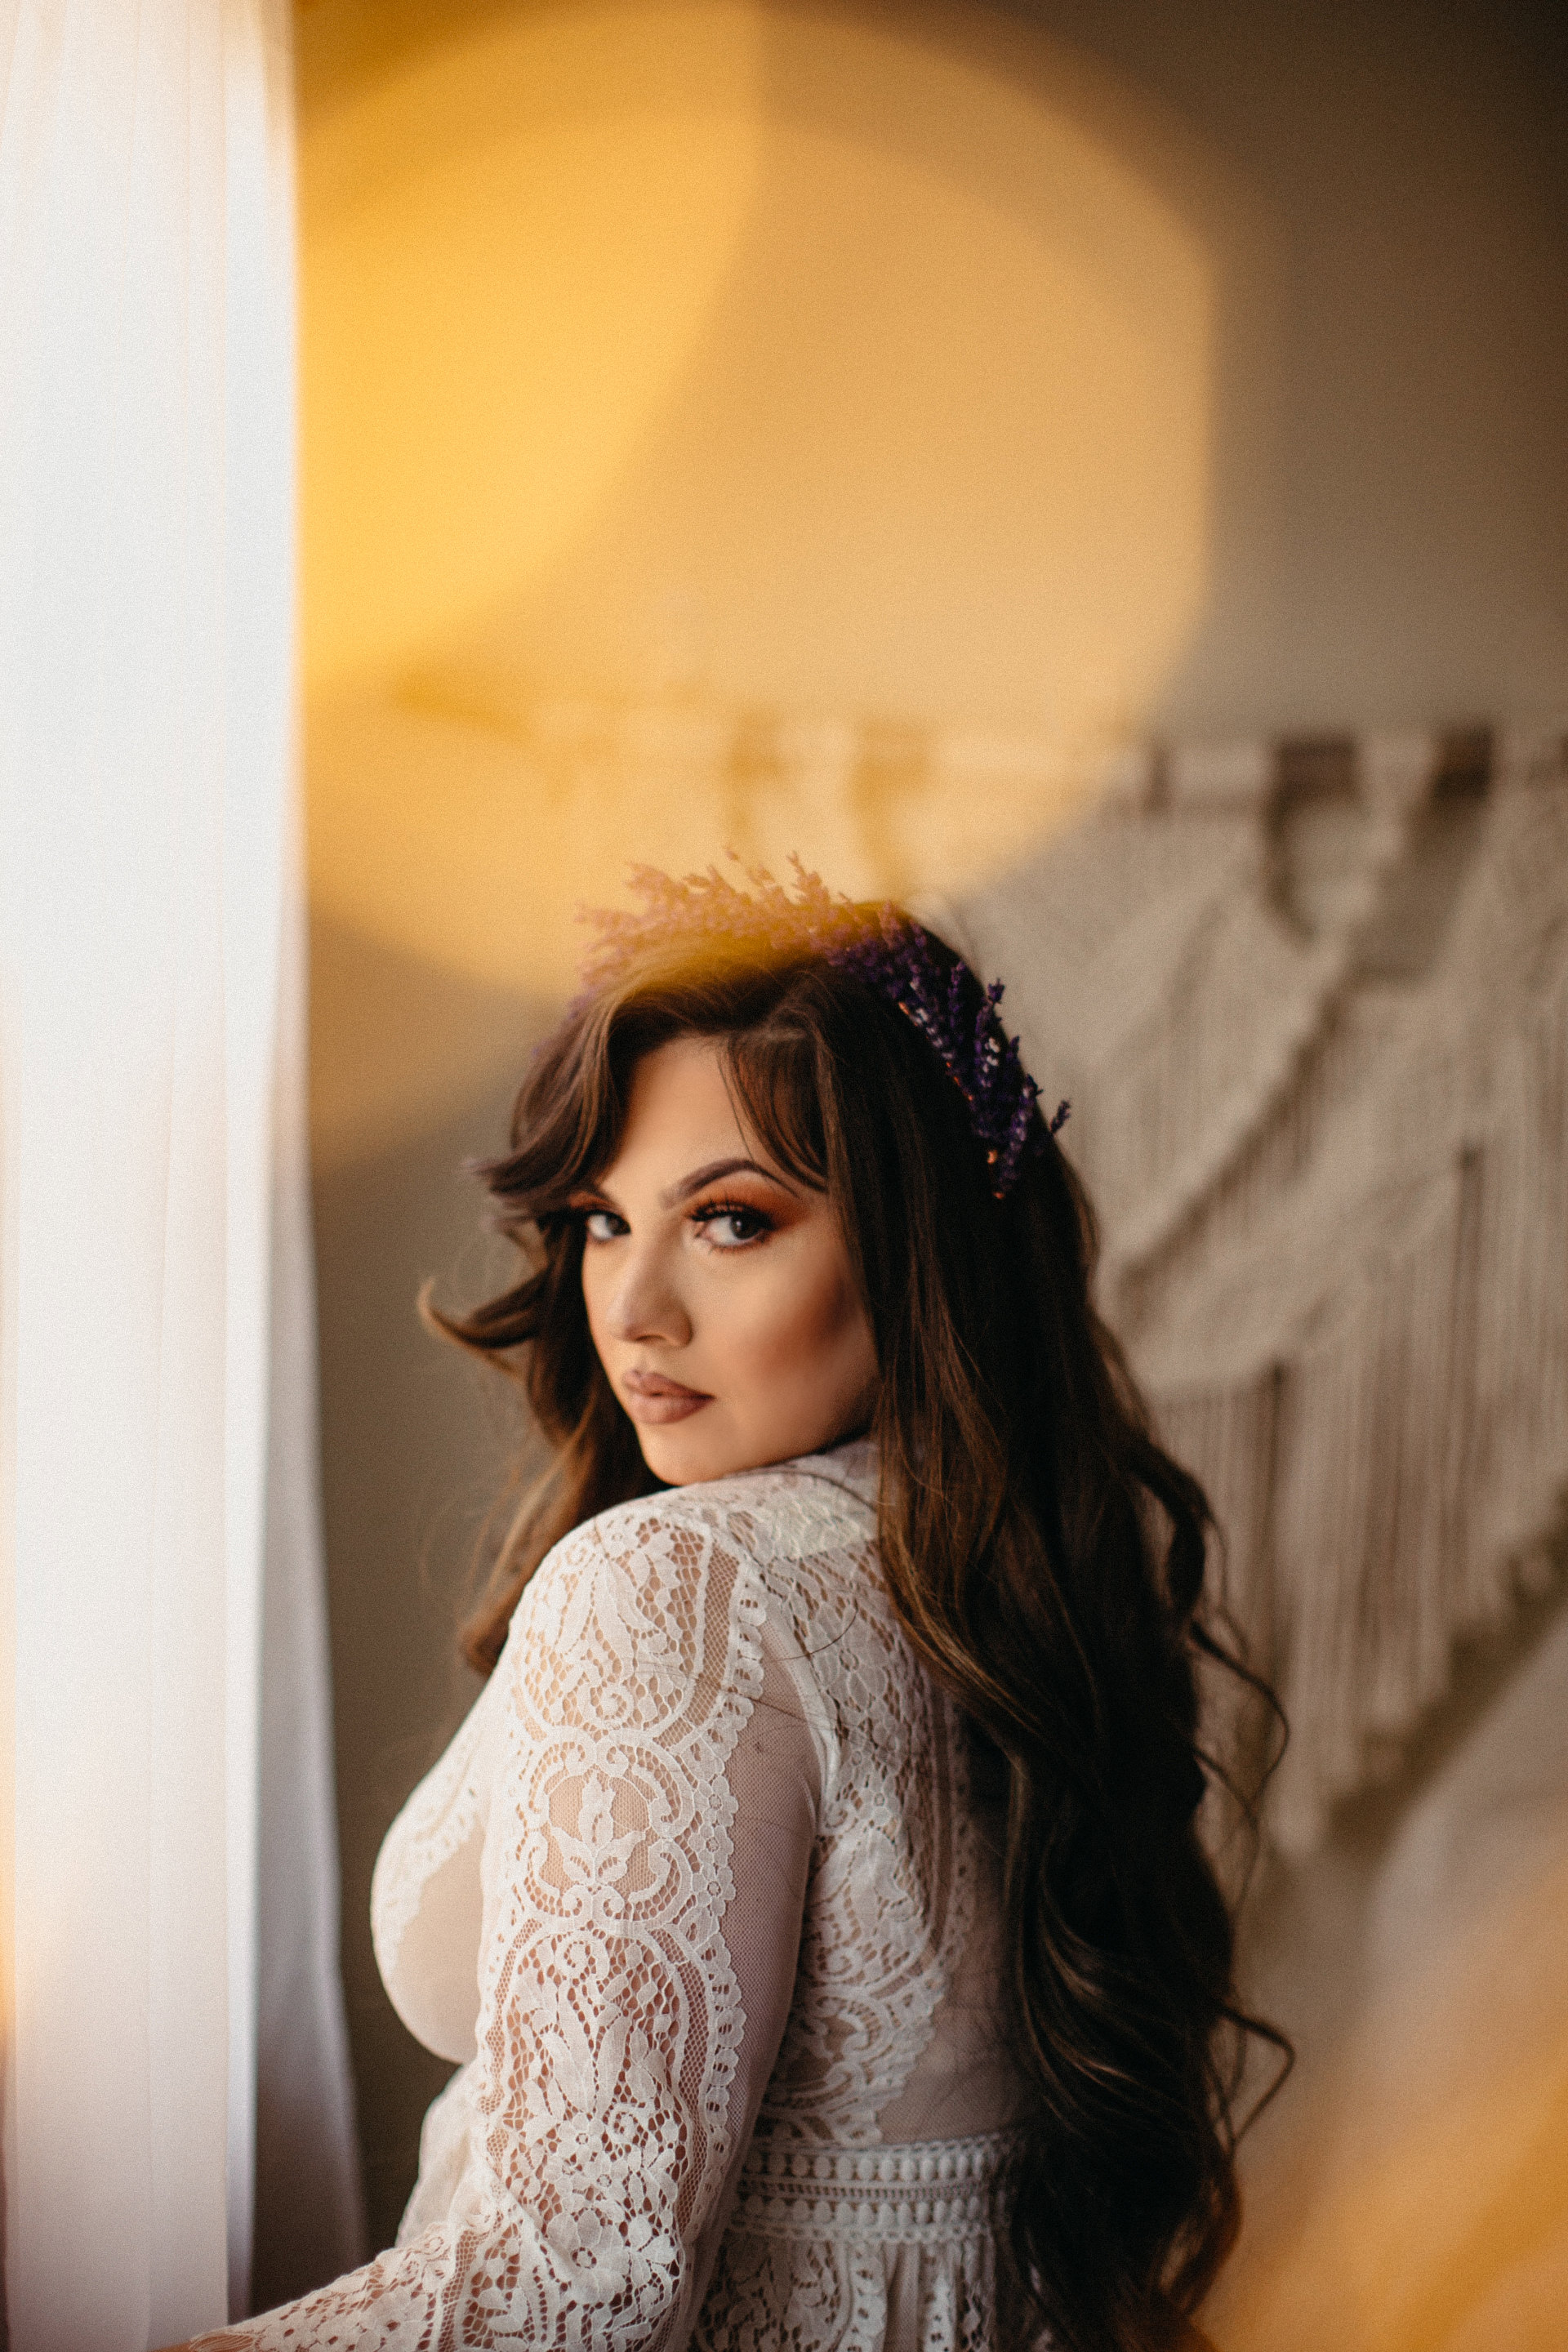 Liz Osban Photography Boudoir Sweetheart Sessions Session Tavae Hurtado pinup Cheyenne Wyoming Ft Collins Colorado Self Love Flower Crown Wedding Elope Eloping Elopement Engaged Gift2.jpg